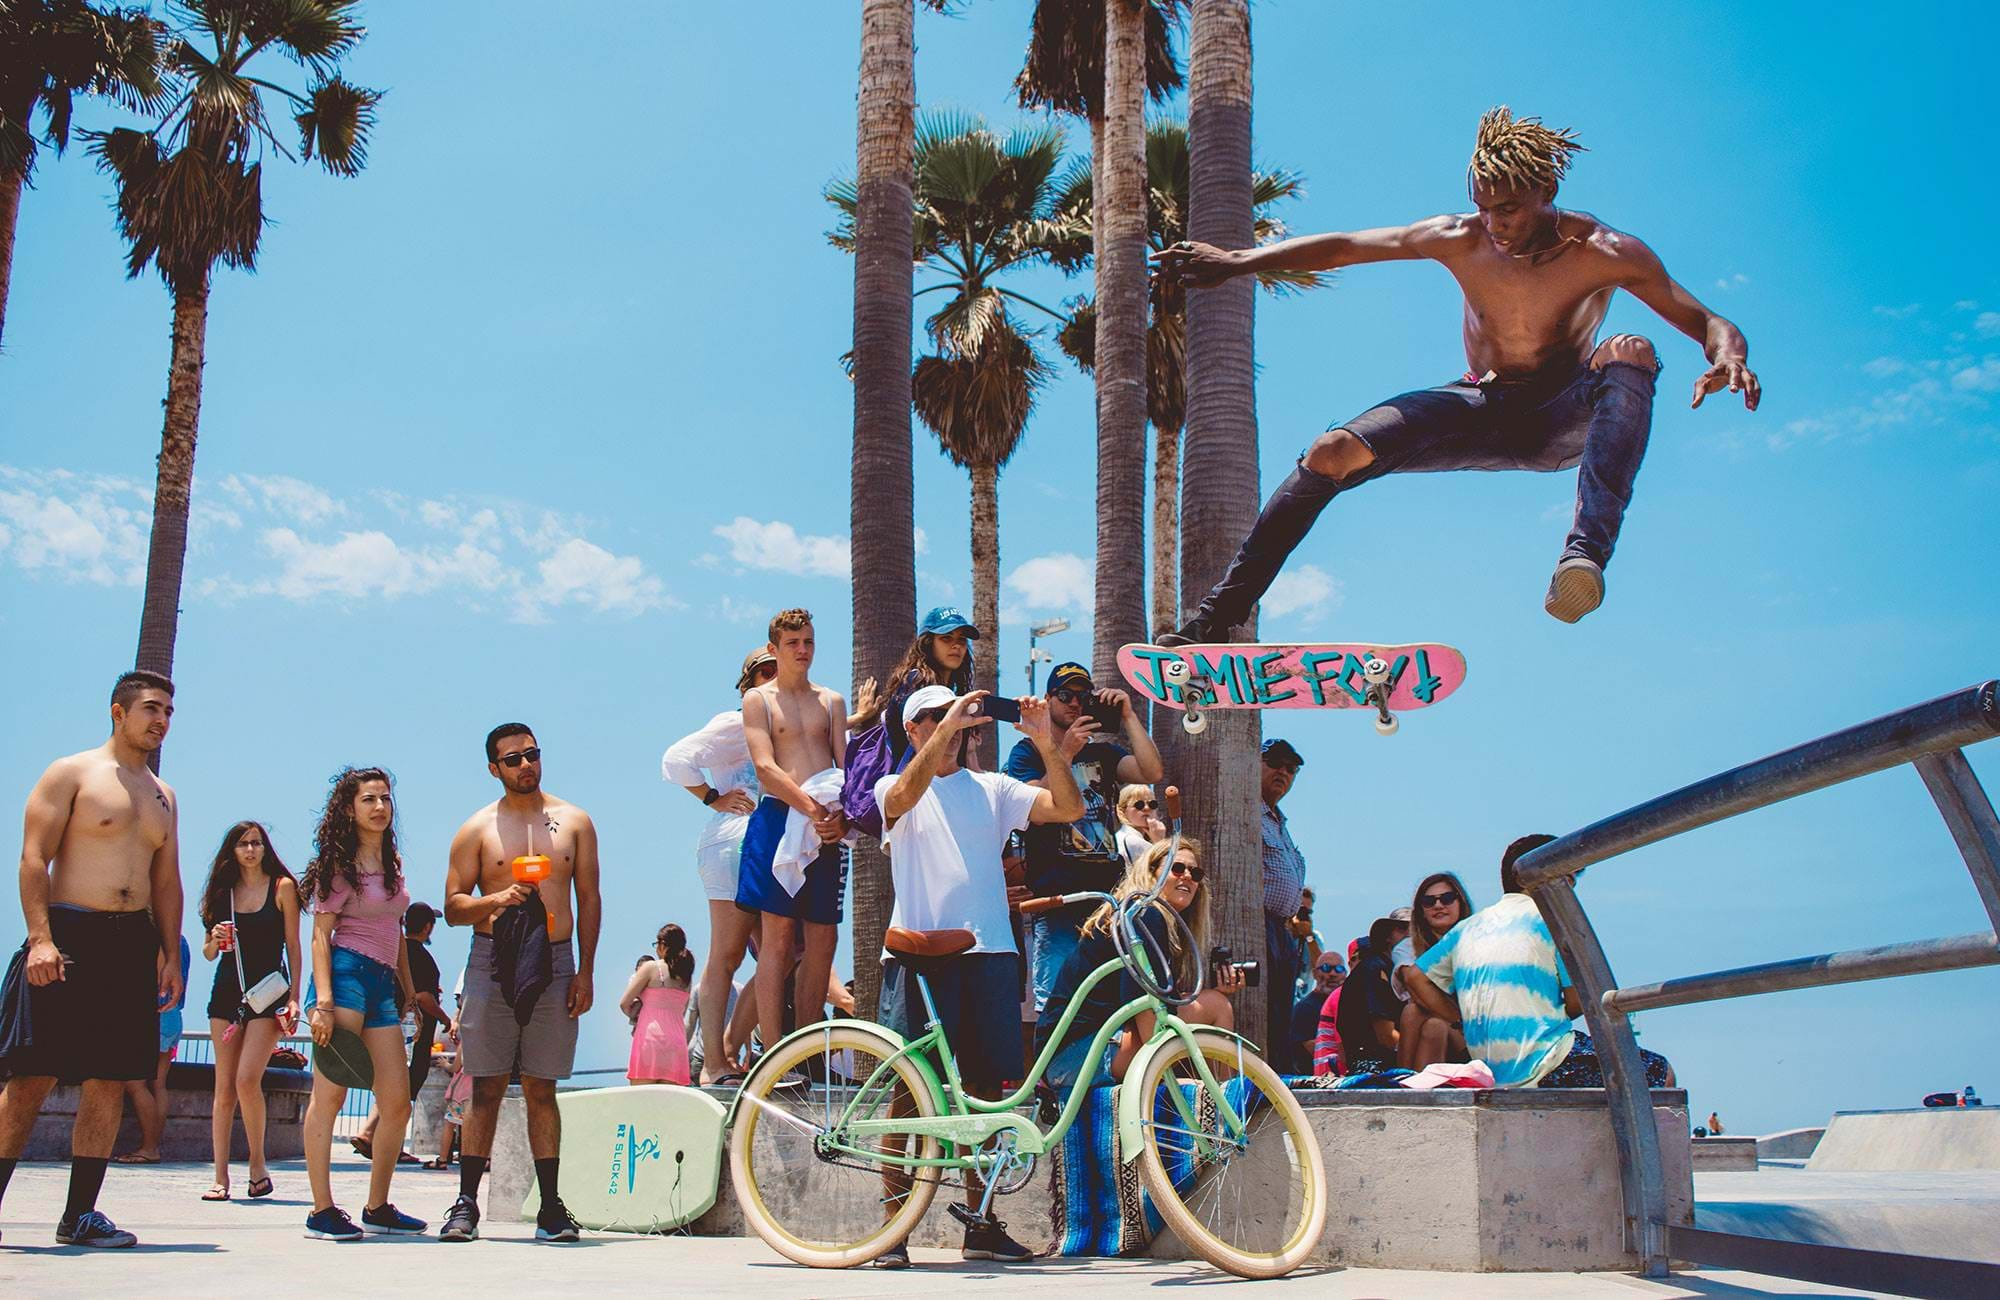 A skater in Los Angeles and an audience